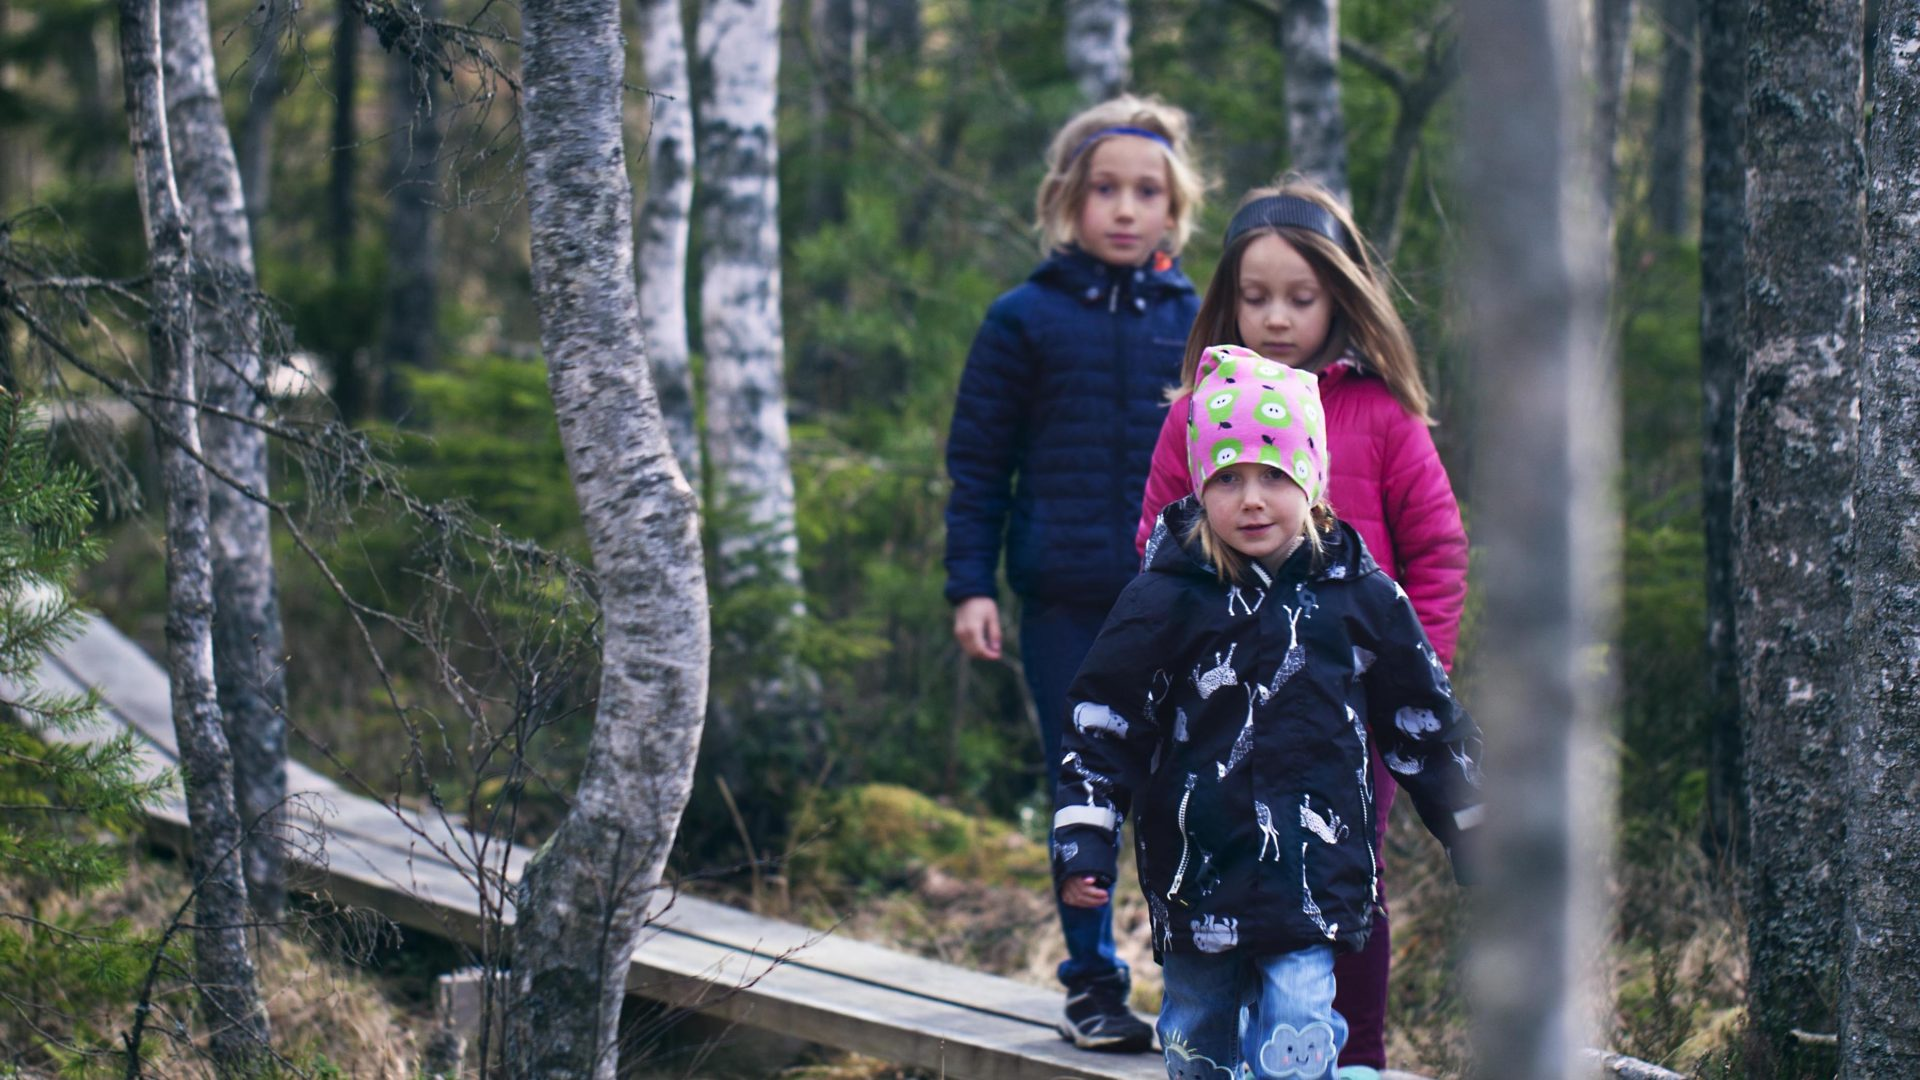 Målerås Village family fun